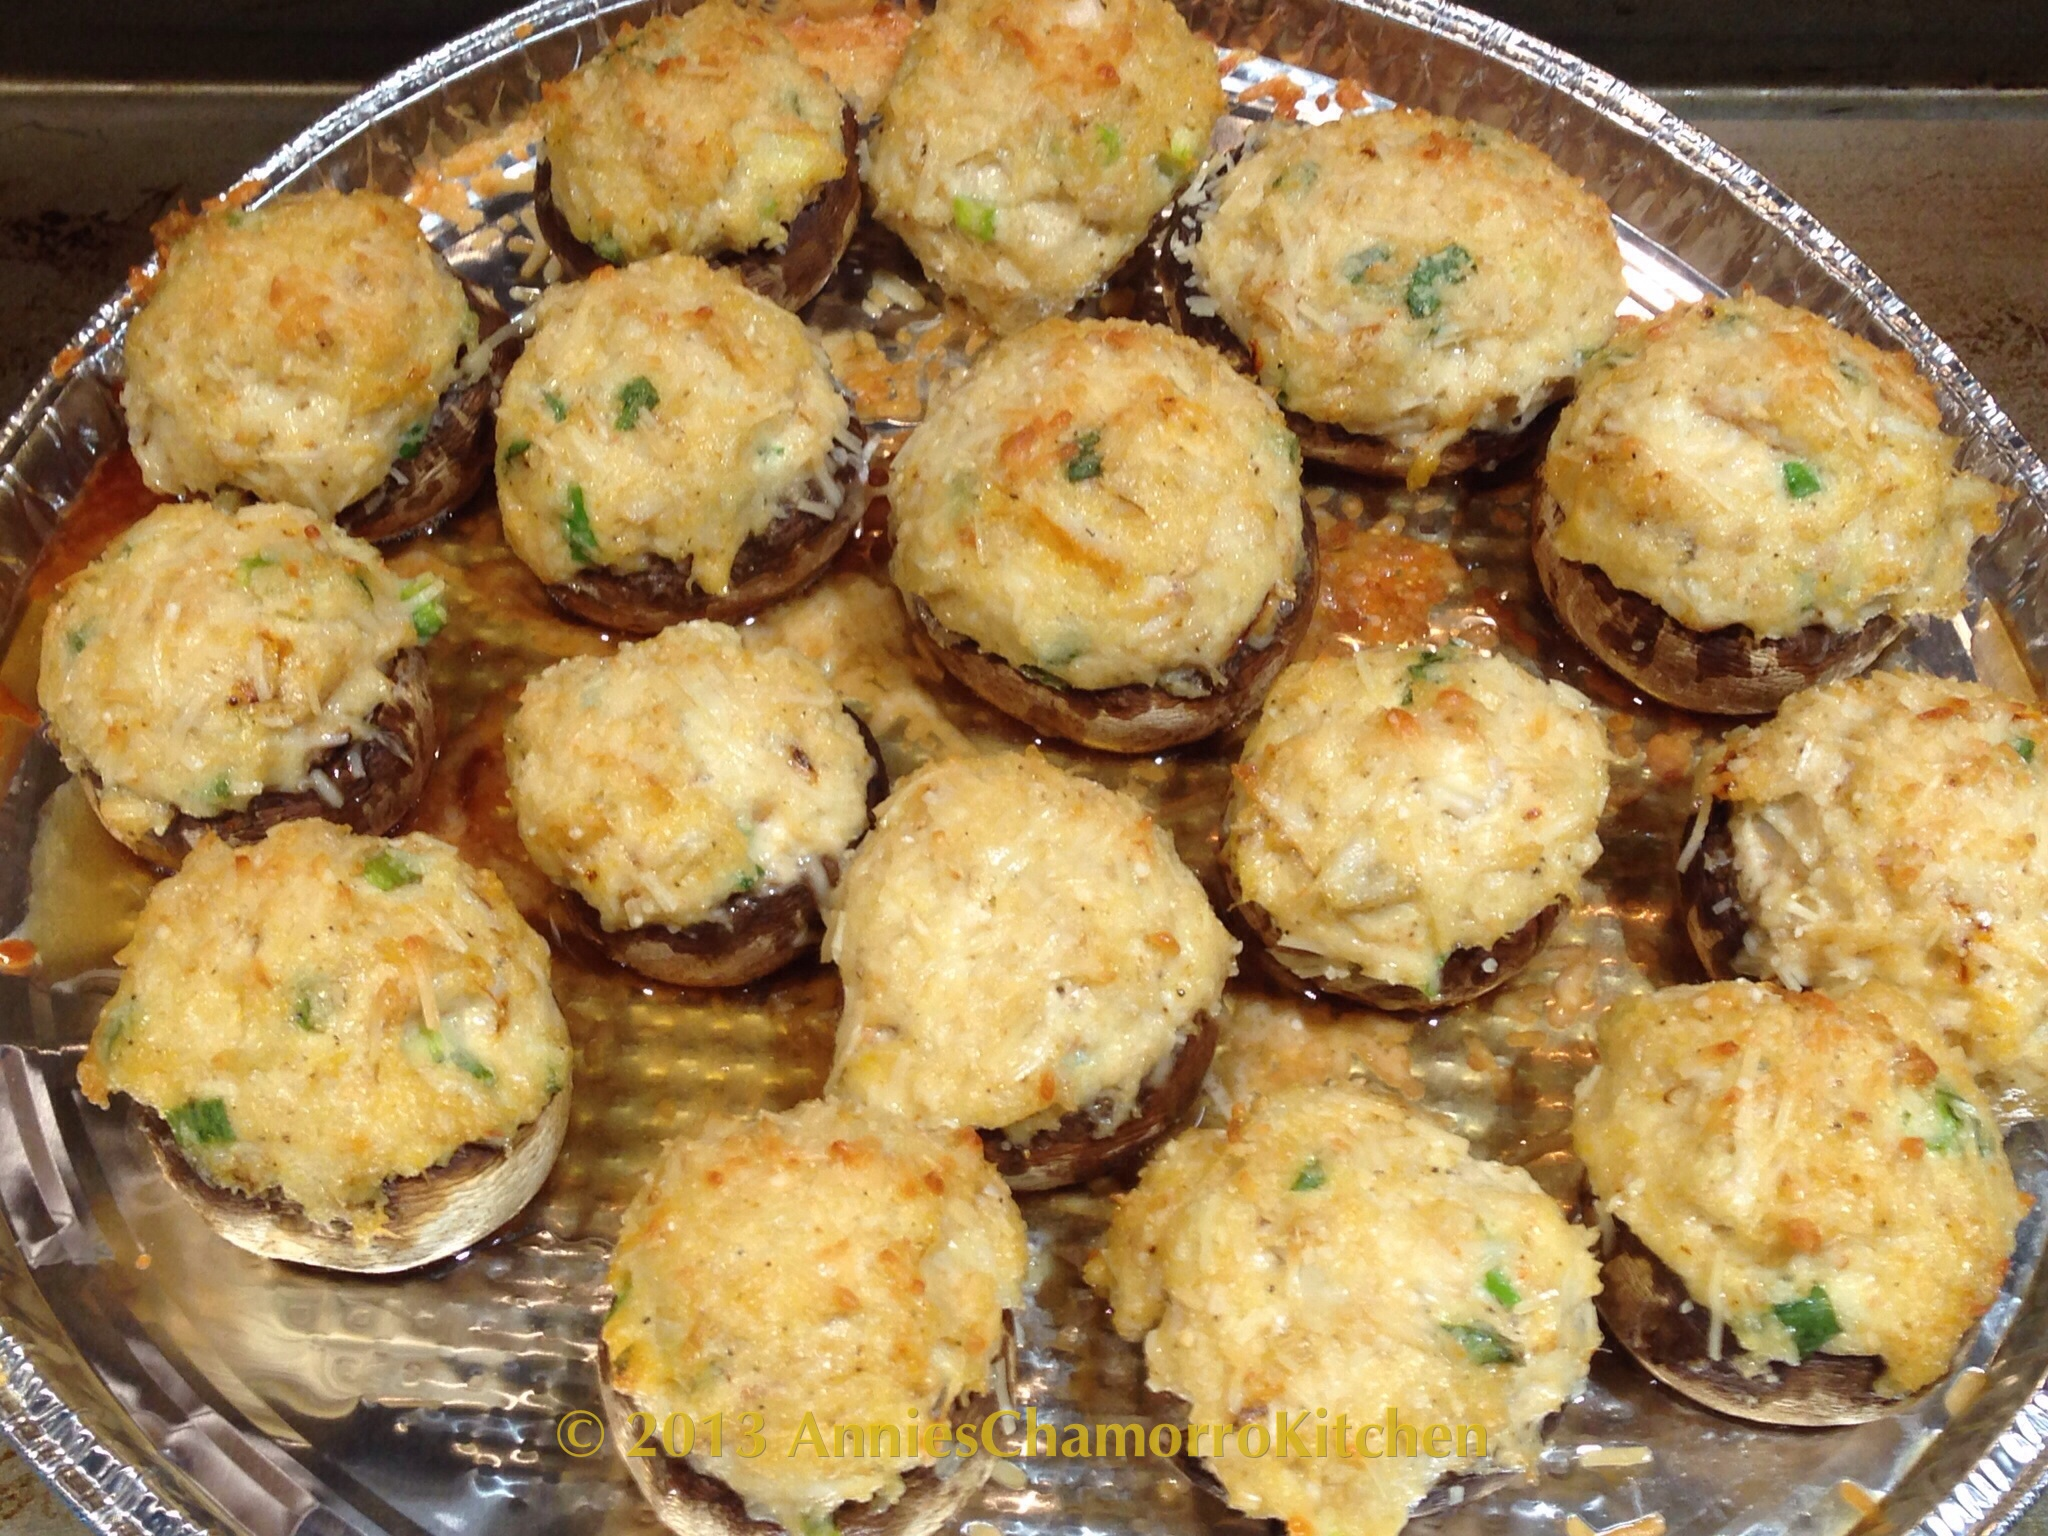 ... crab stuffed mushrooms tender mushrooms sweet crab meat and melted